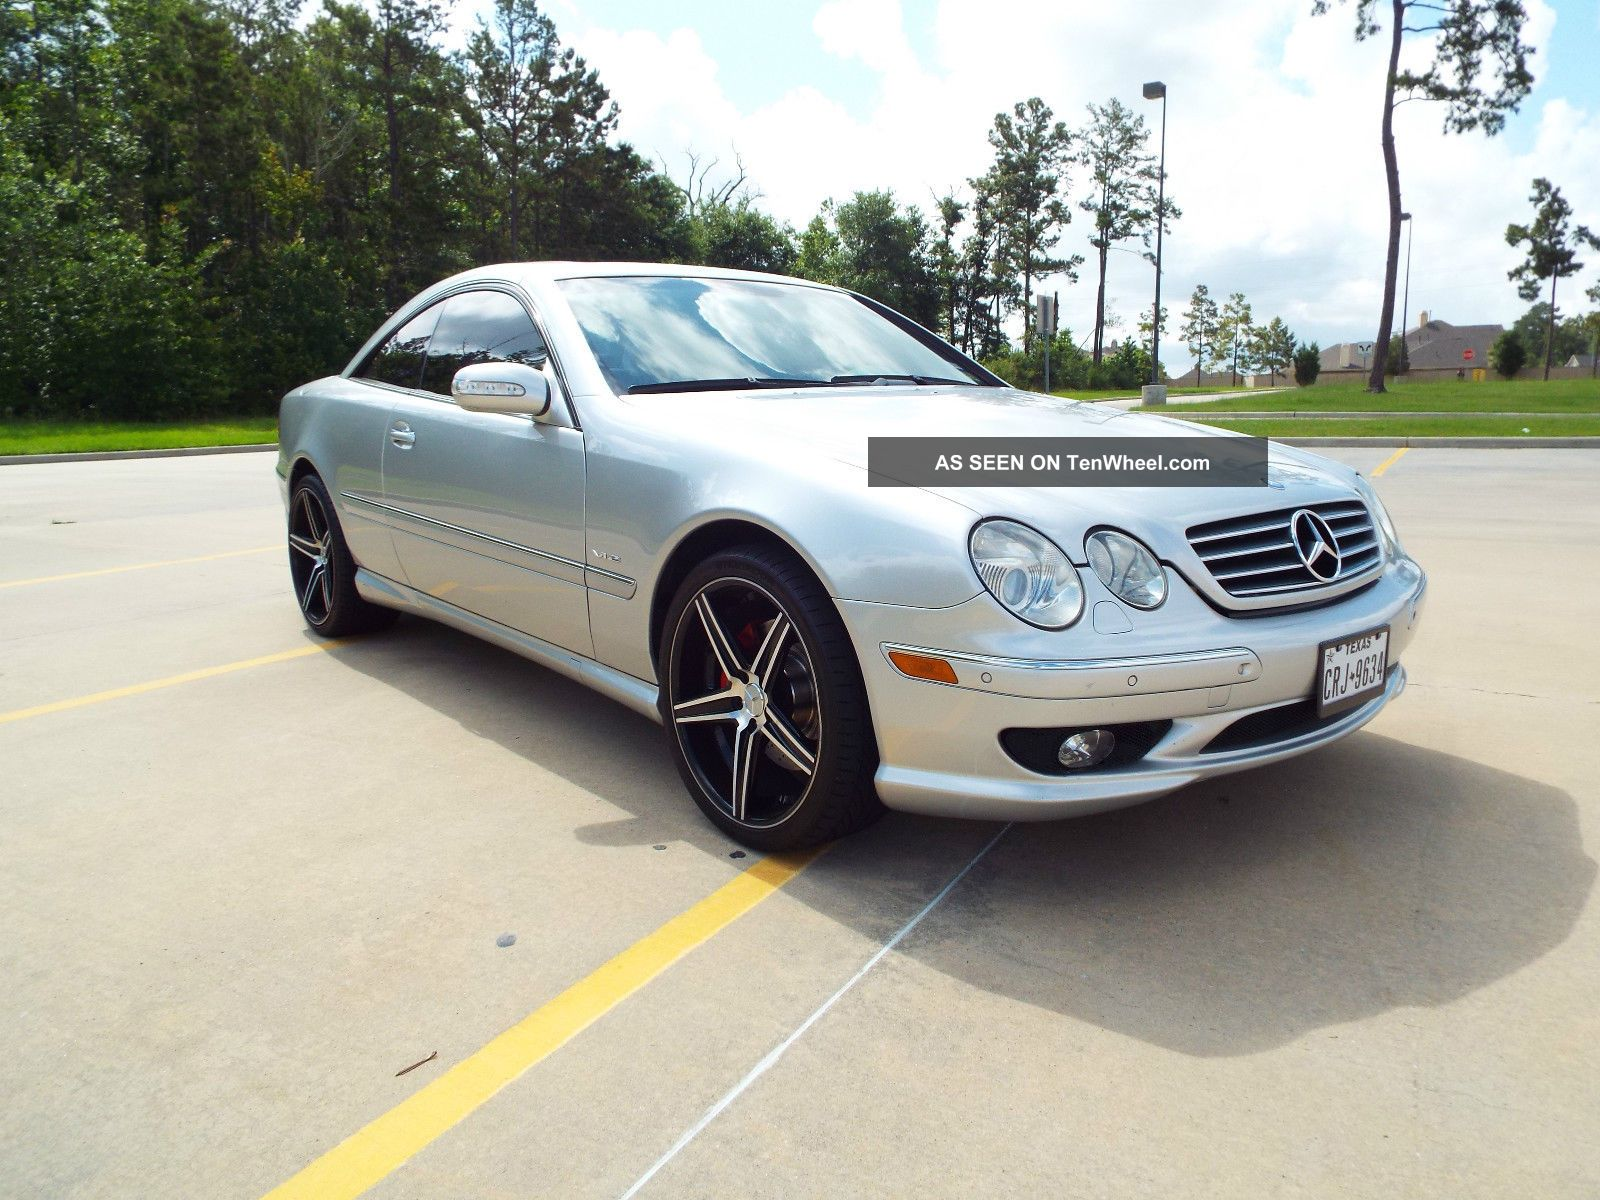 2001 mercedes benz cl600 coupe with amg options for Mercedes benz options